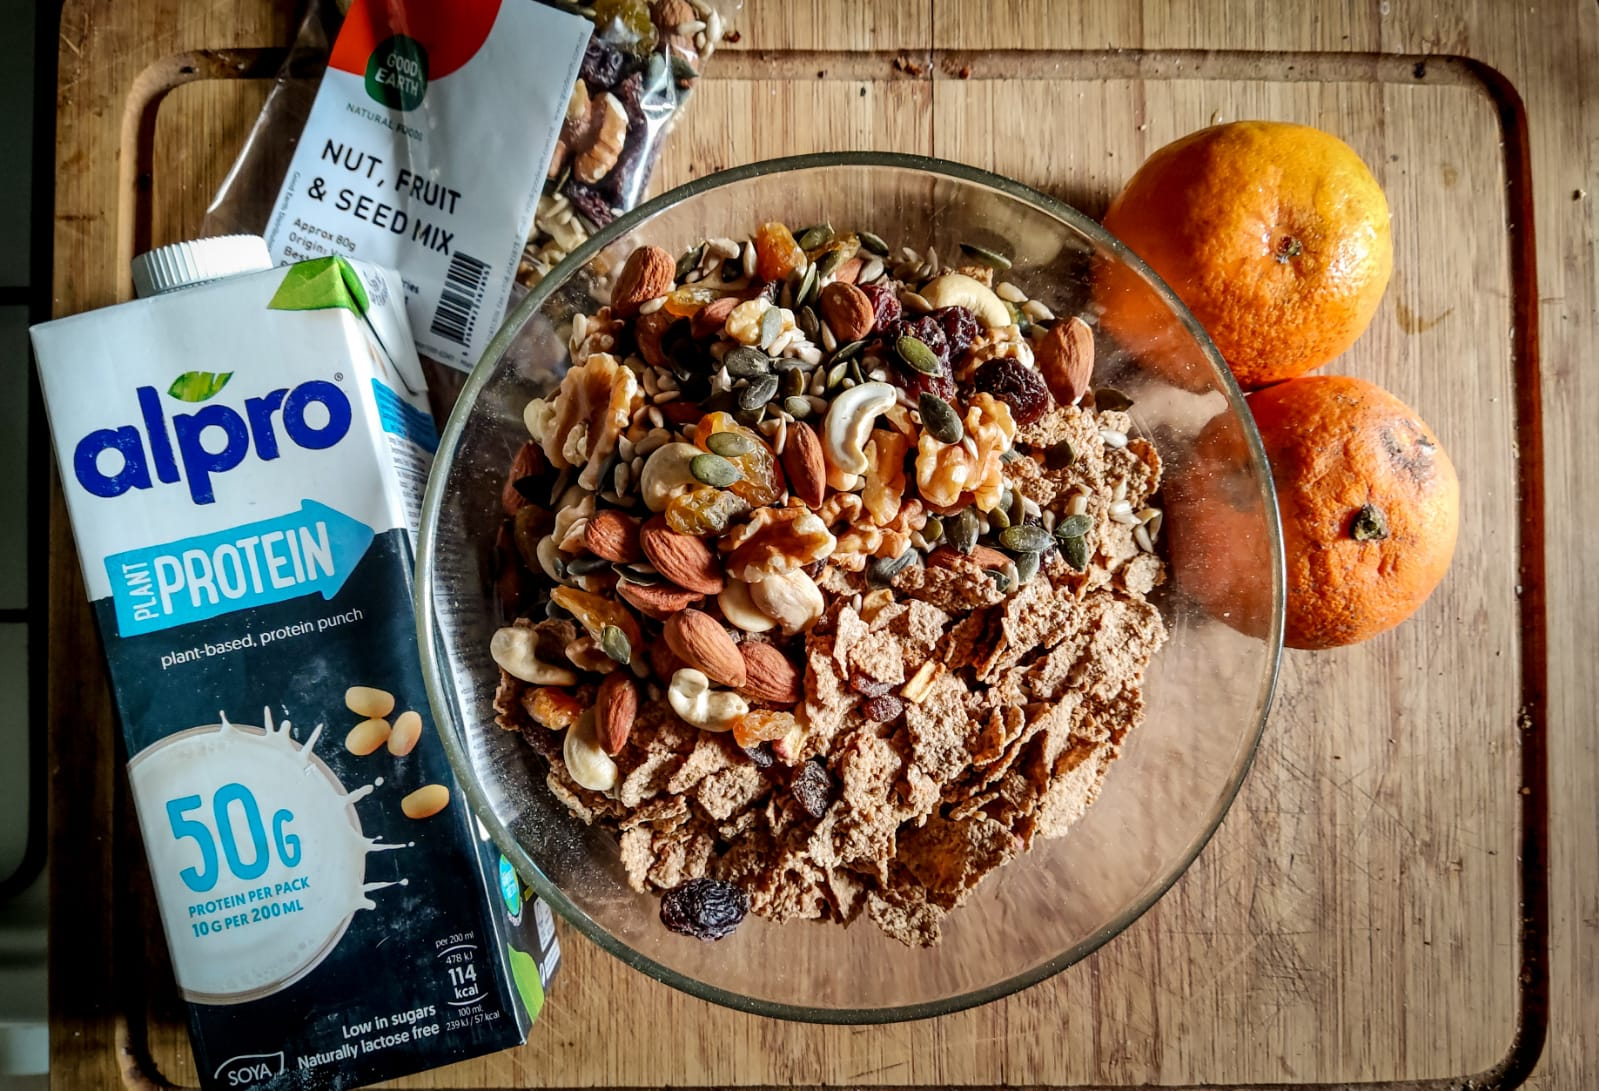 High Fibre Cereal Loaf with alpro protein